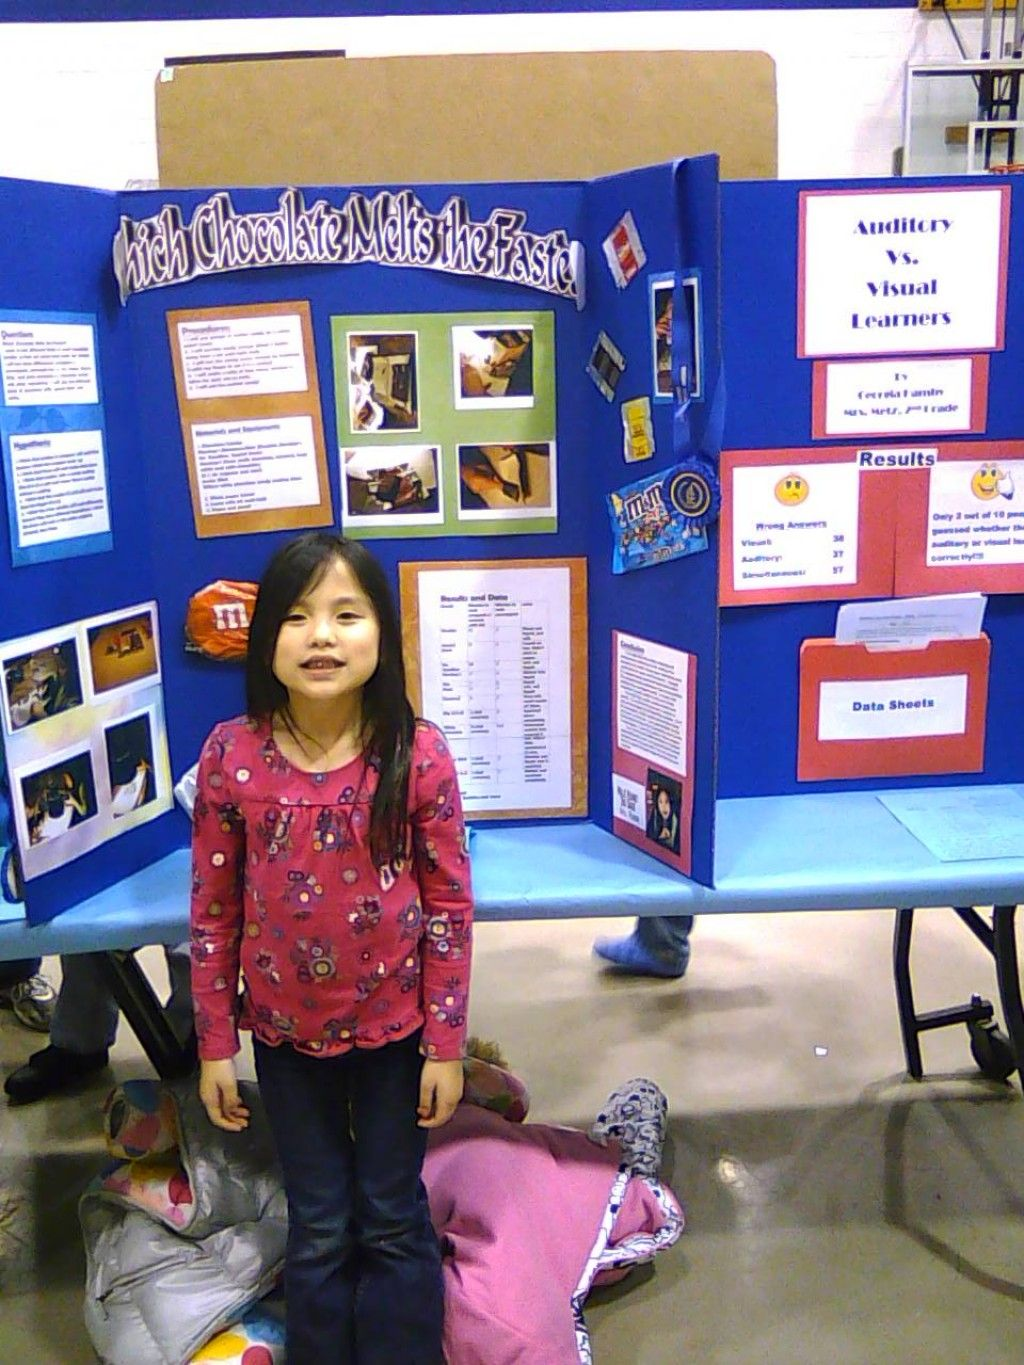 Science Fair Project Chocolate Melts Faster